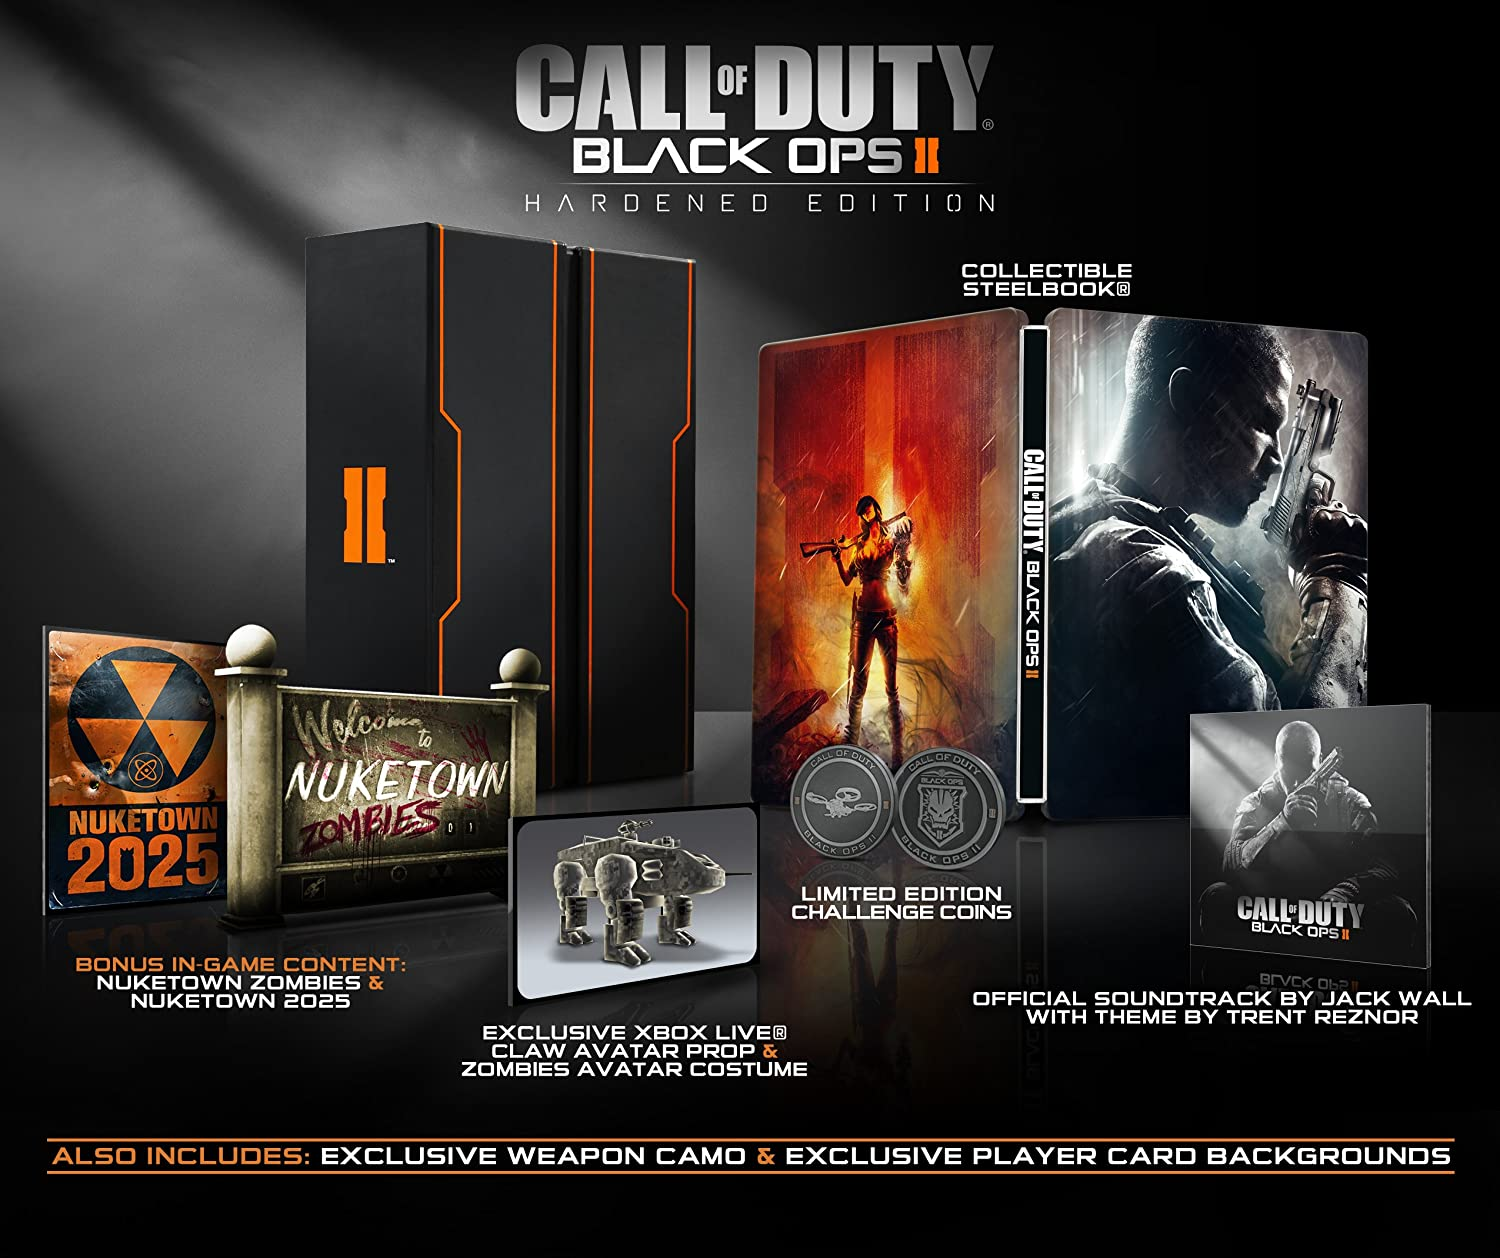 Call of Duty: Black Ops II - Hardened Edition (Xbox 360